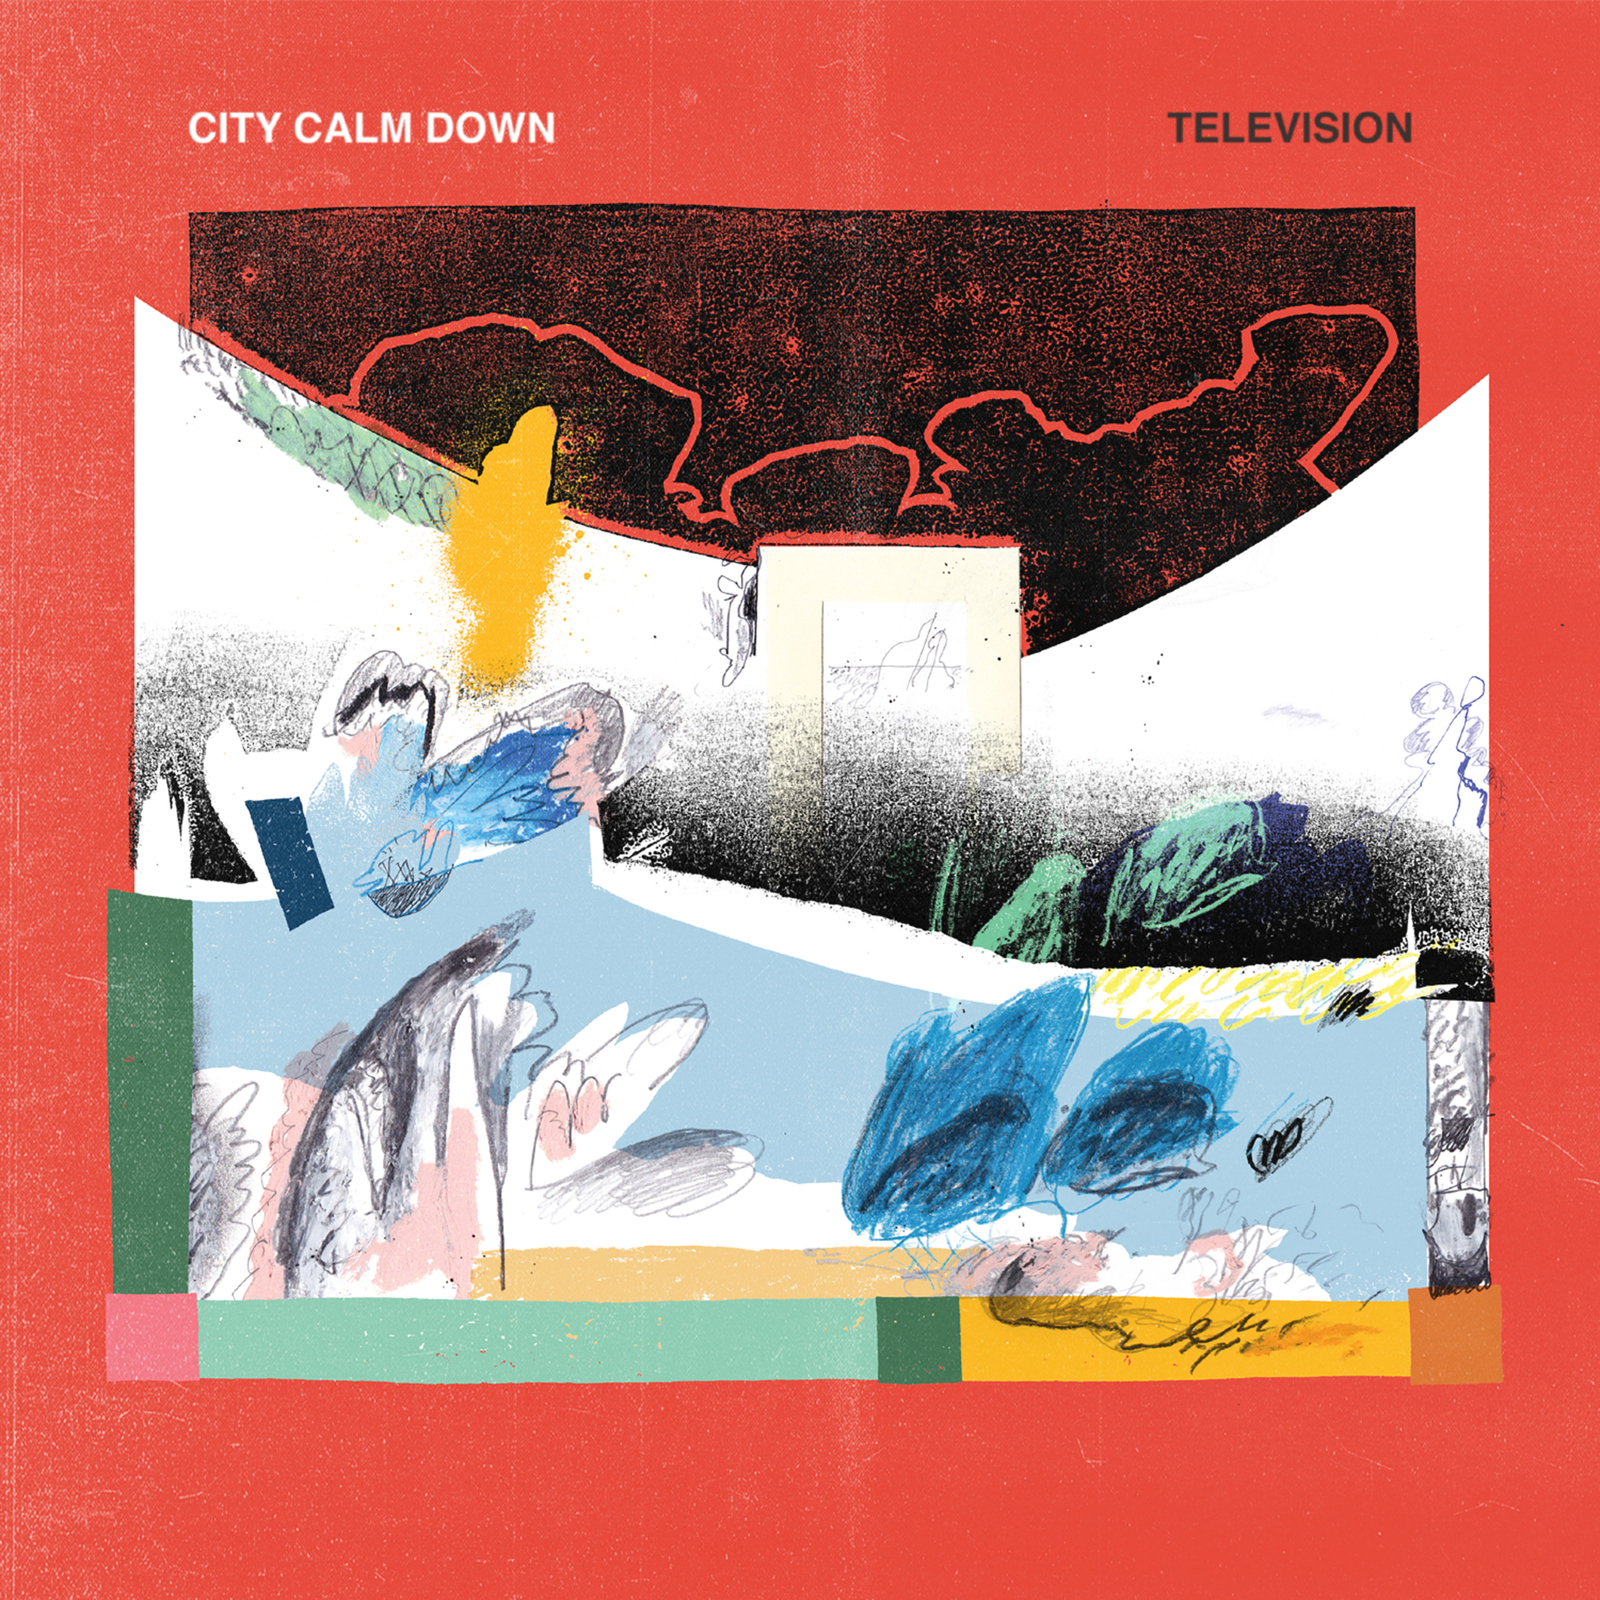 Television by City Calm Down image